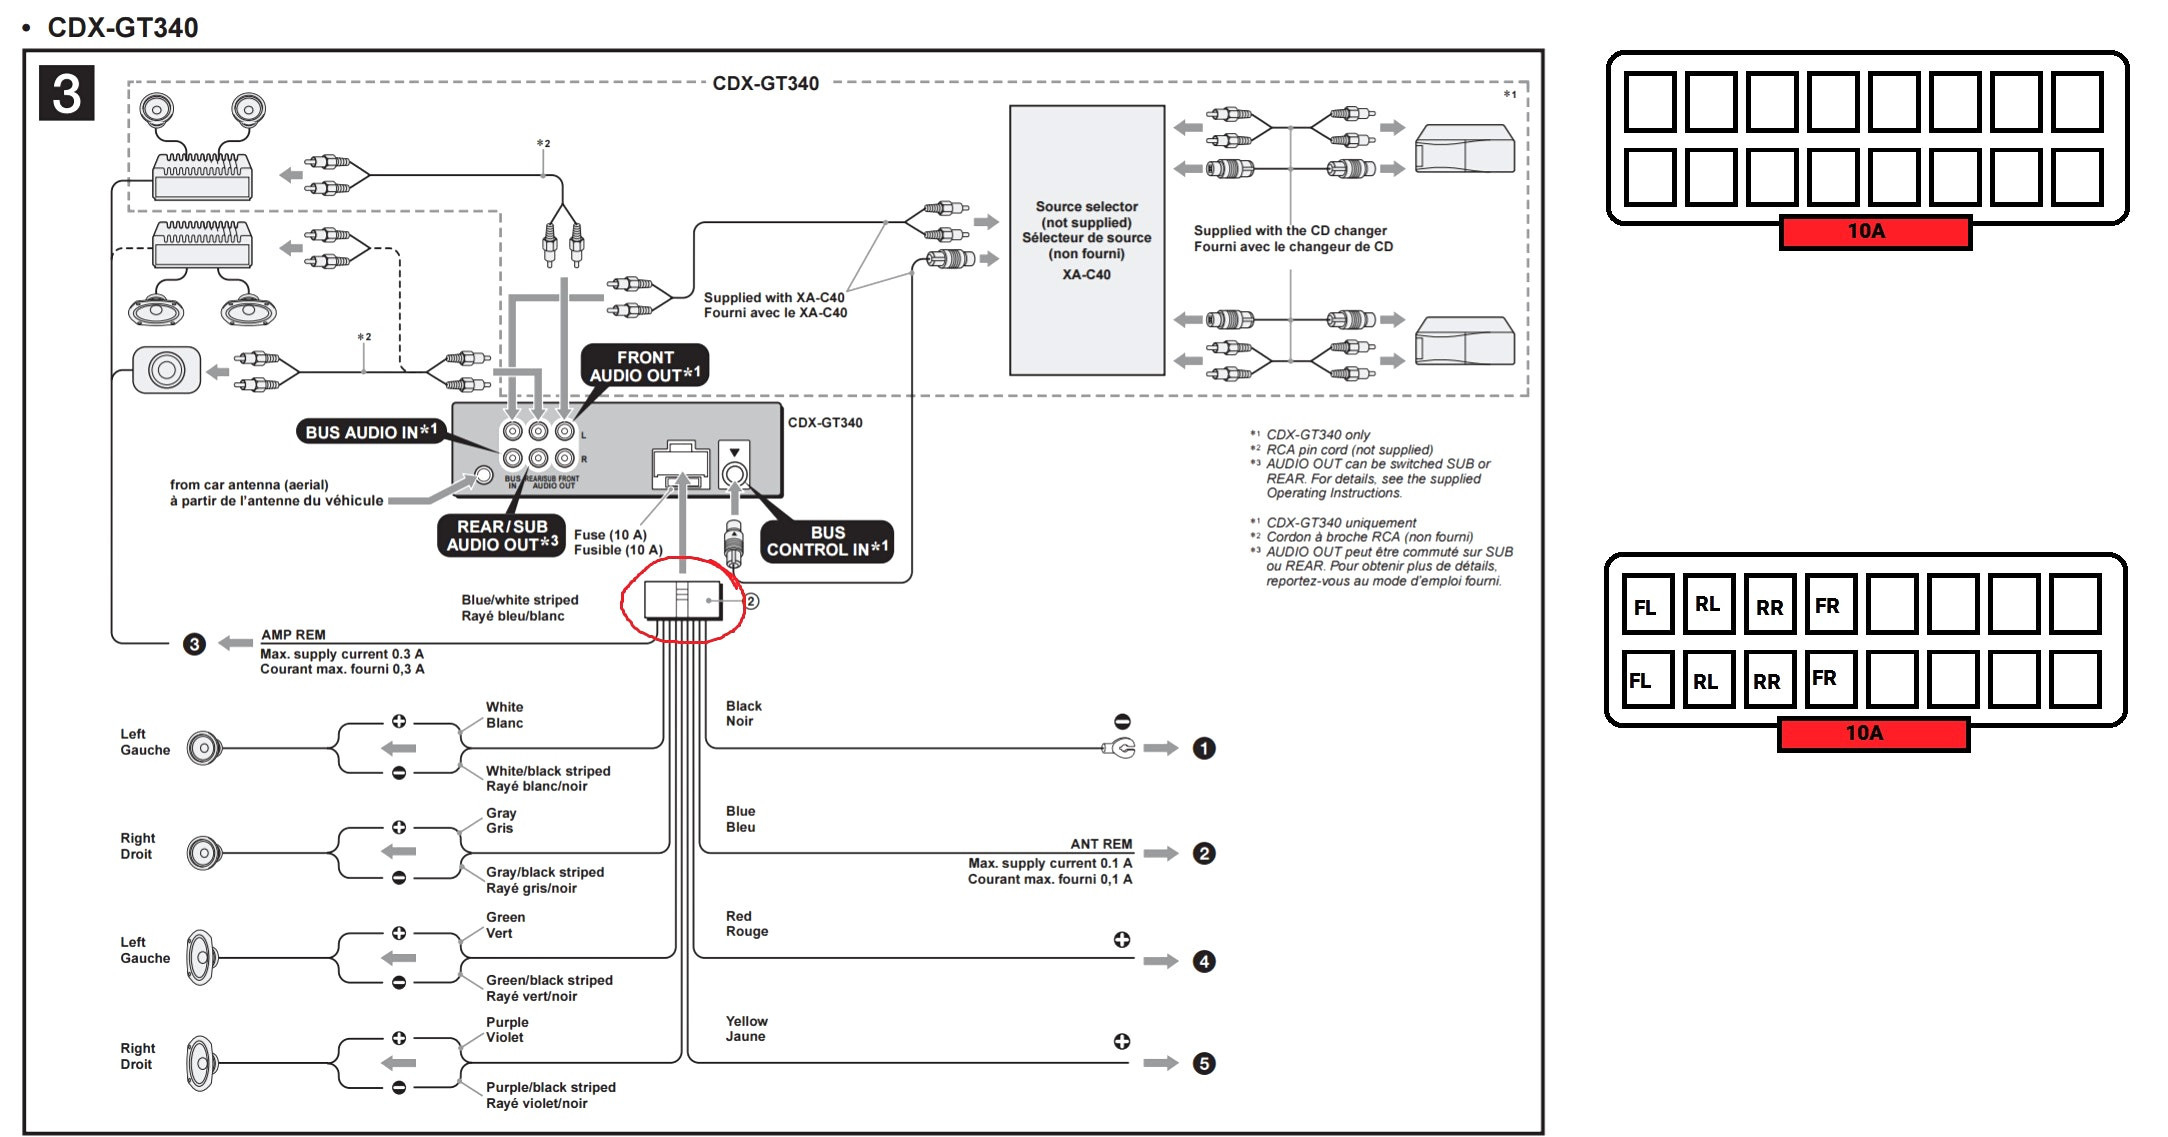 [DIAGRAM] Sony Xplod Deck Wiring Diagram FULL Version HD